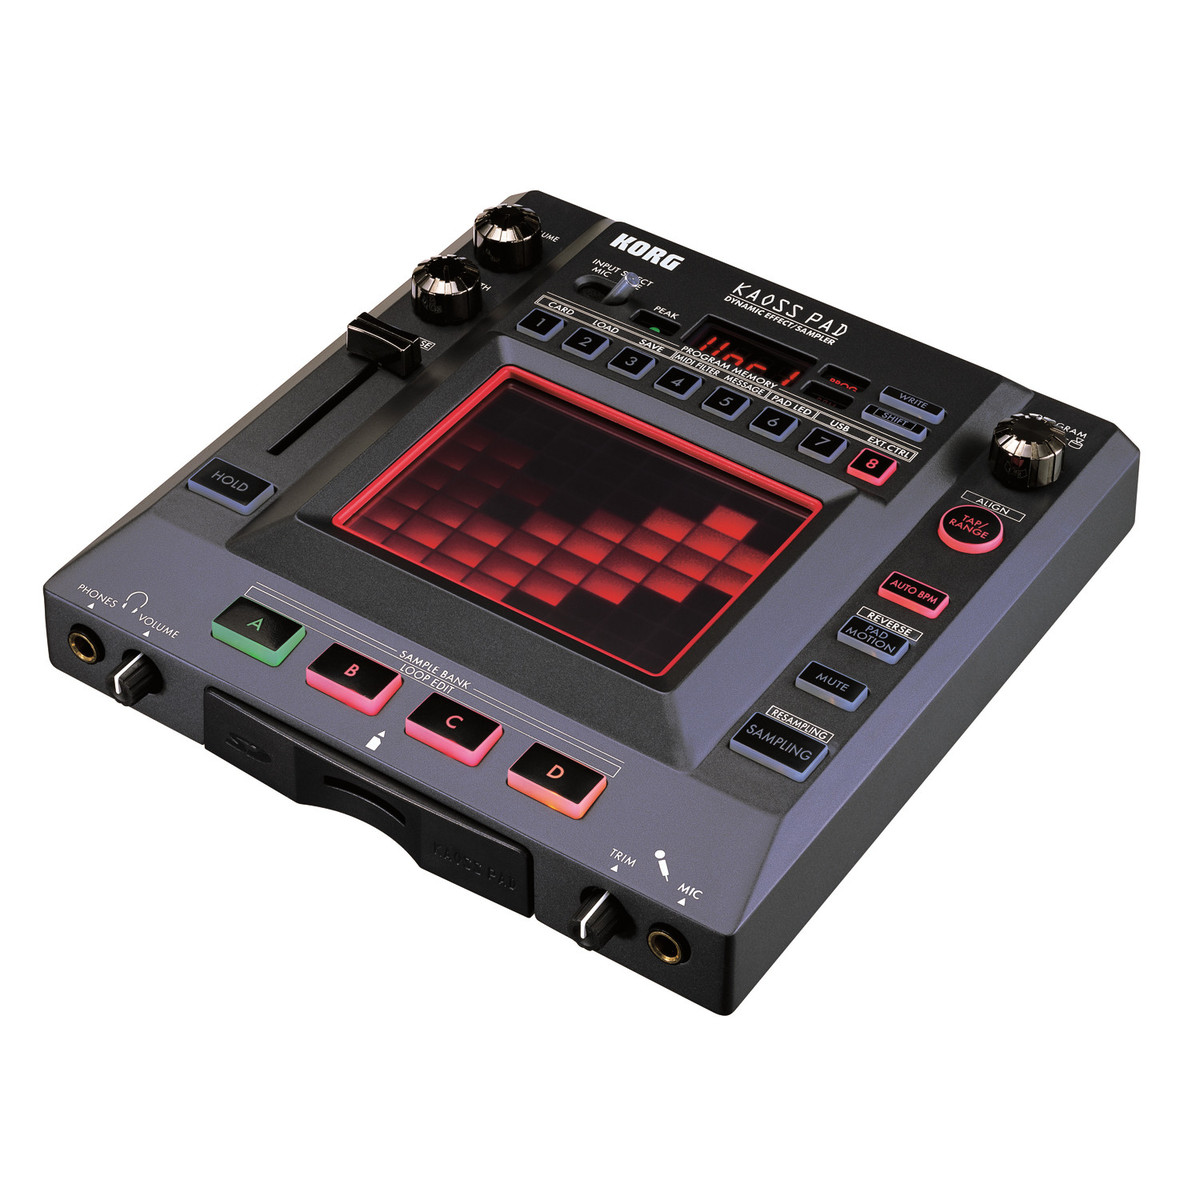 korg kaoss pad kp3 dynamic effects sampler at gear4music. Black Bedroom Furniture Sets. Home Design Ideas